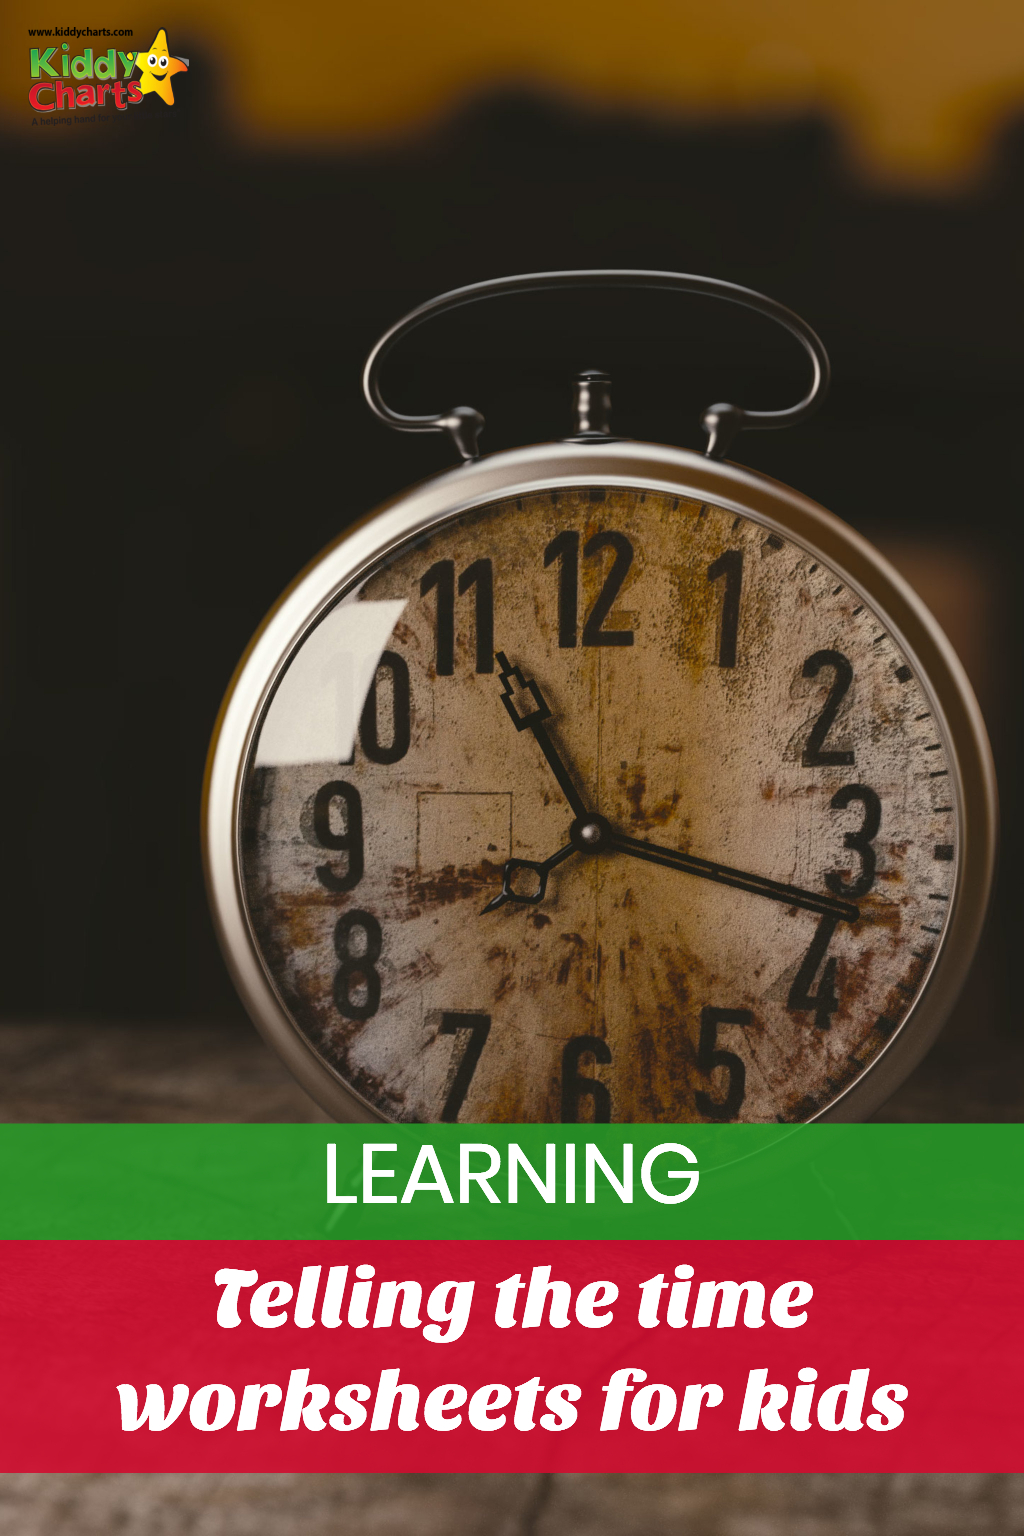 Amazing free learning to tell the time worksheets for kids #learning #time #kids #homeschool